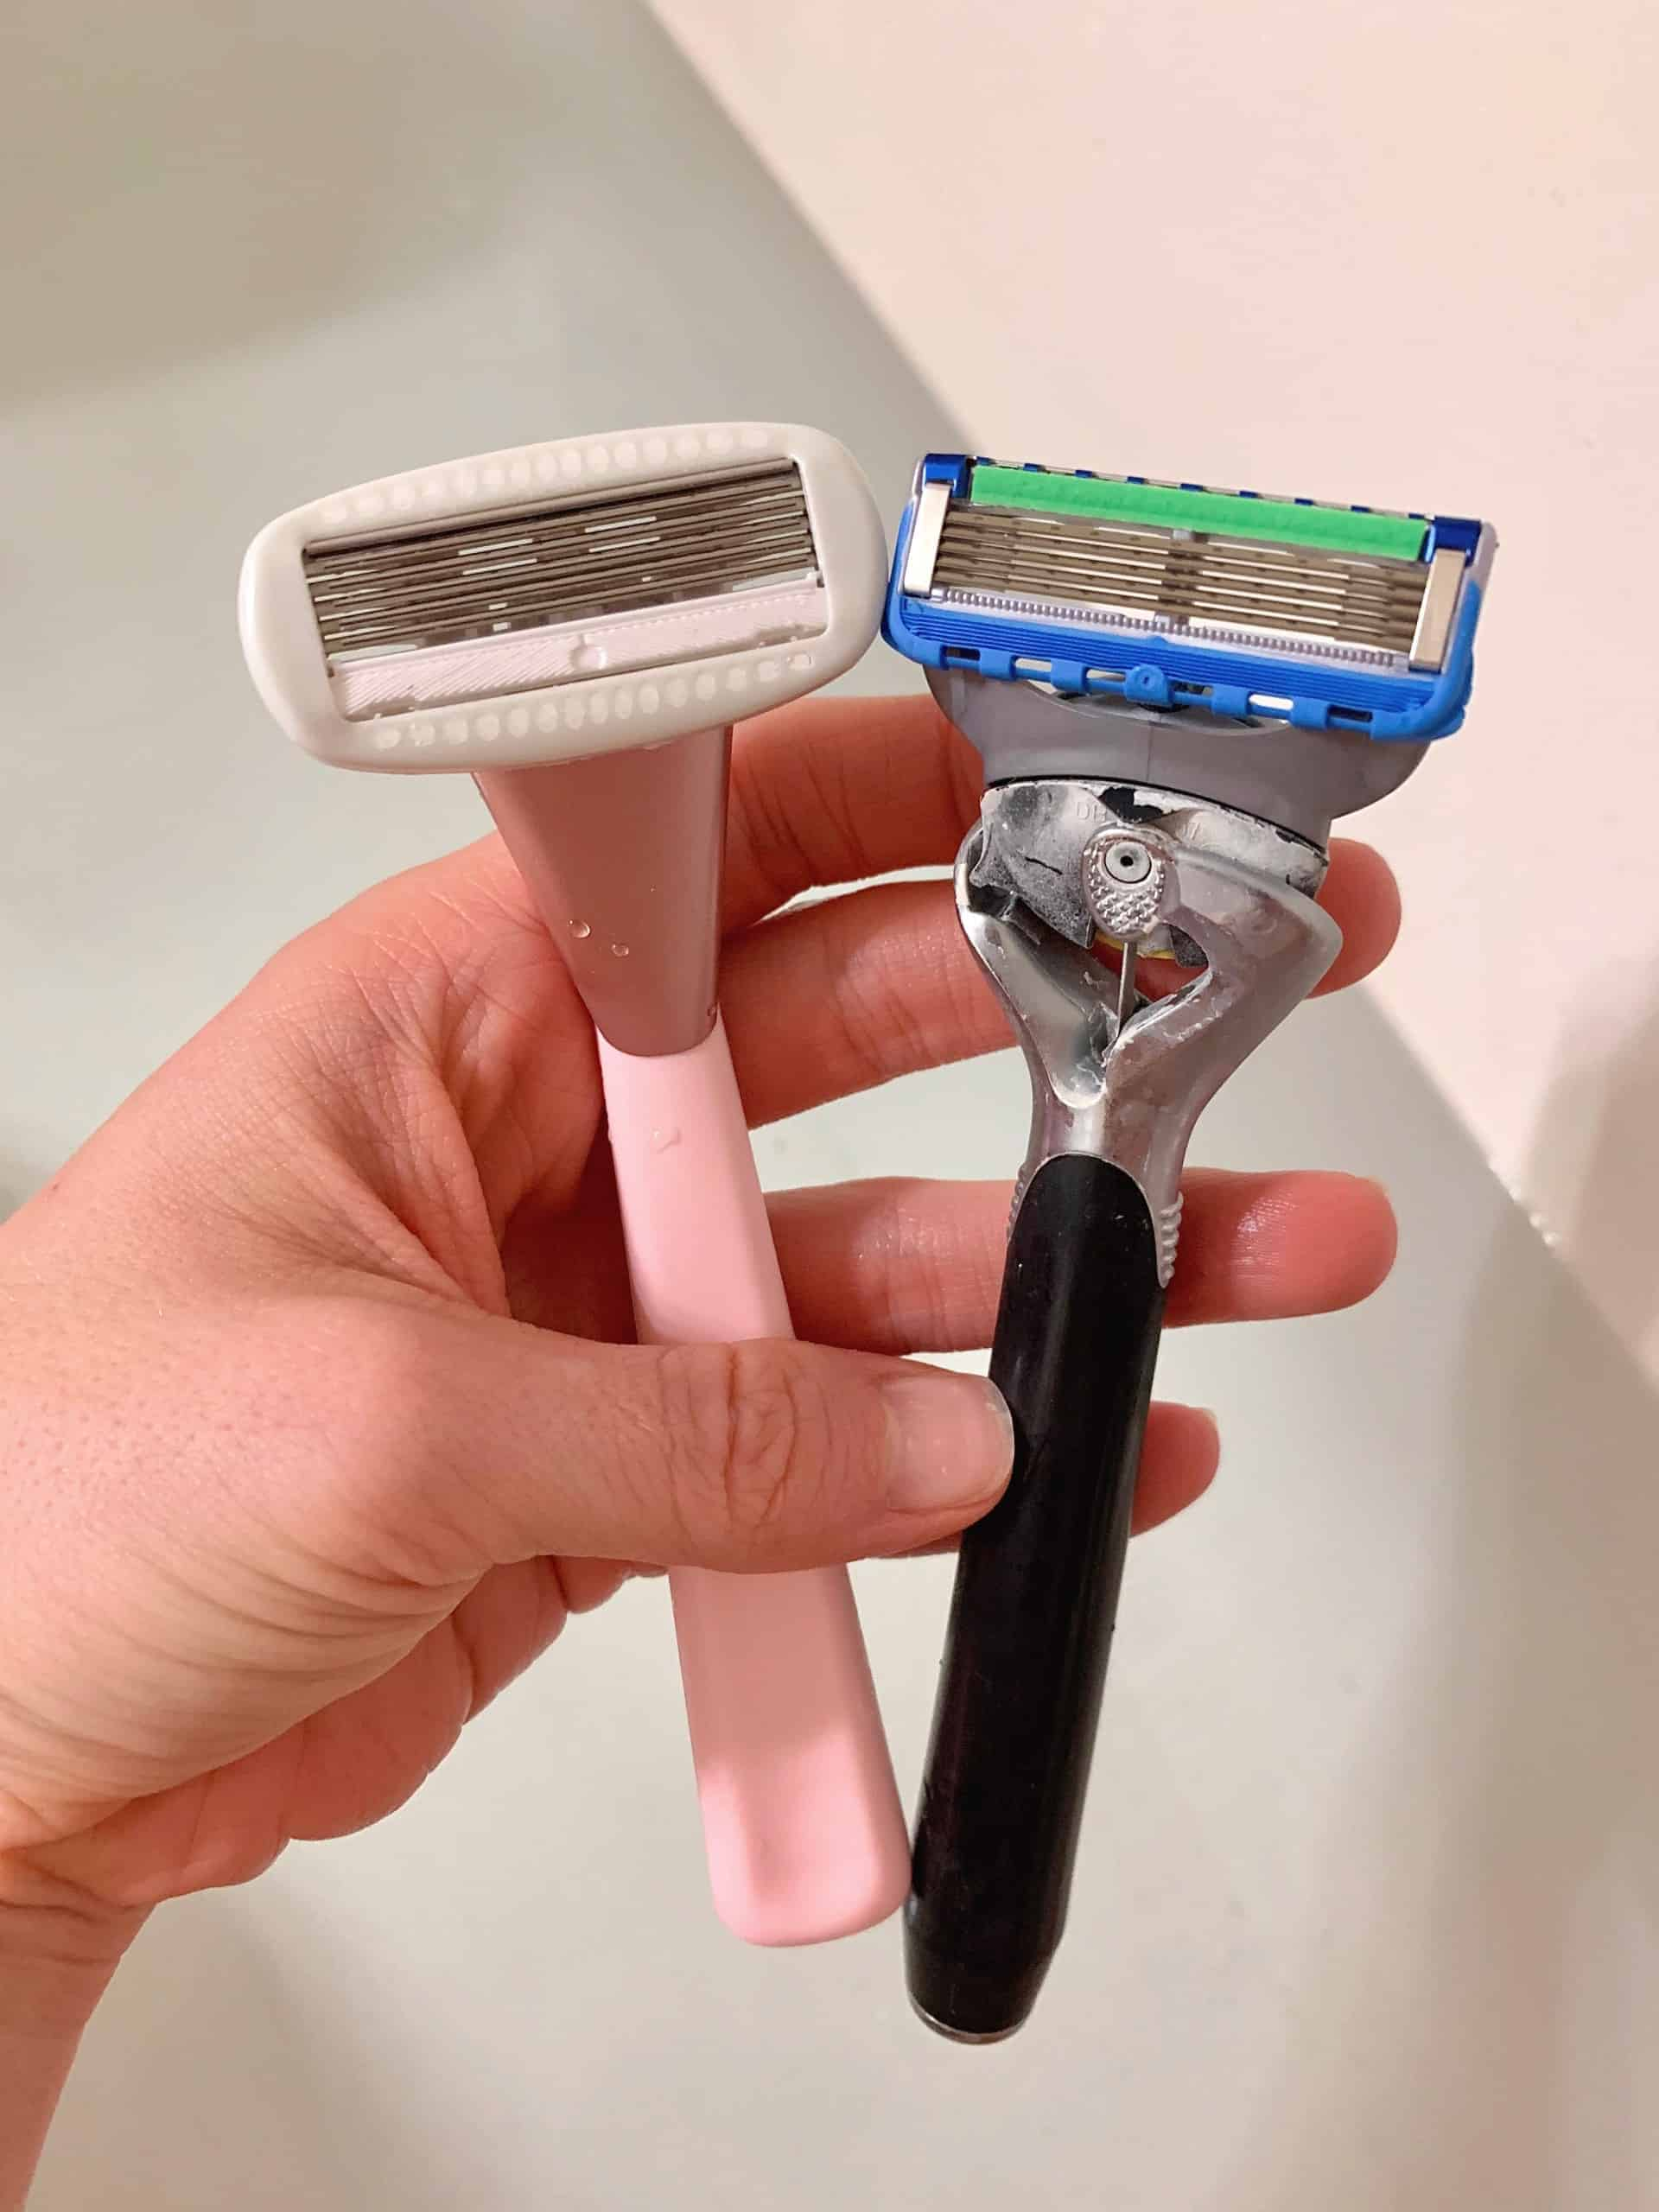 Curious if the Athena Club Razor Kit is the best razor ever? Check out my Honest Athena Club Razor Review below with a promo code to save $5 off your first order! #athenaclubrazor #bestrazor #beautyreview #womensrazor